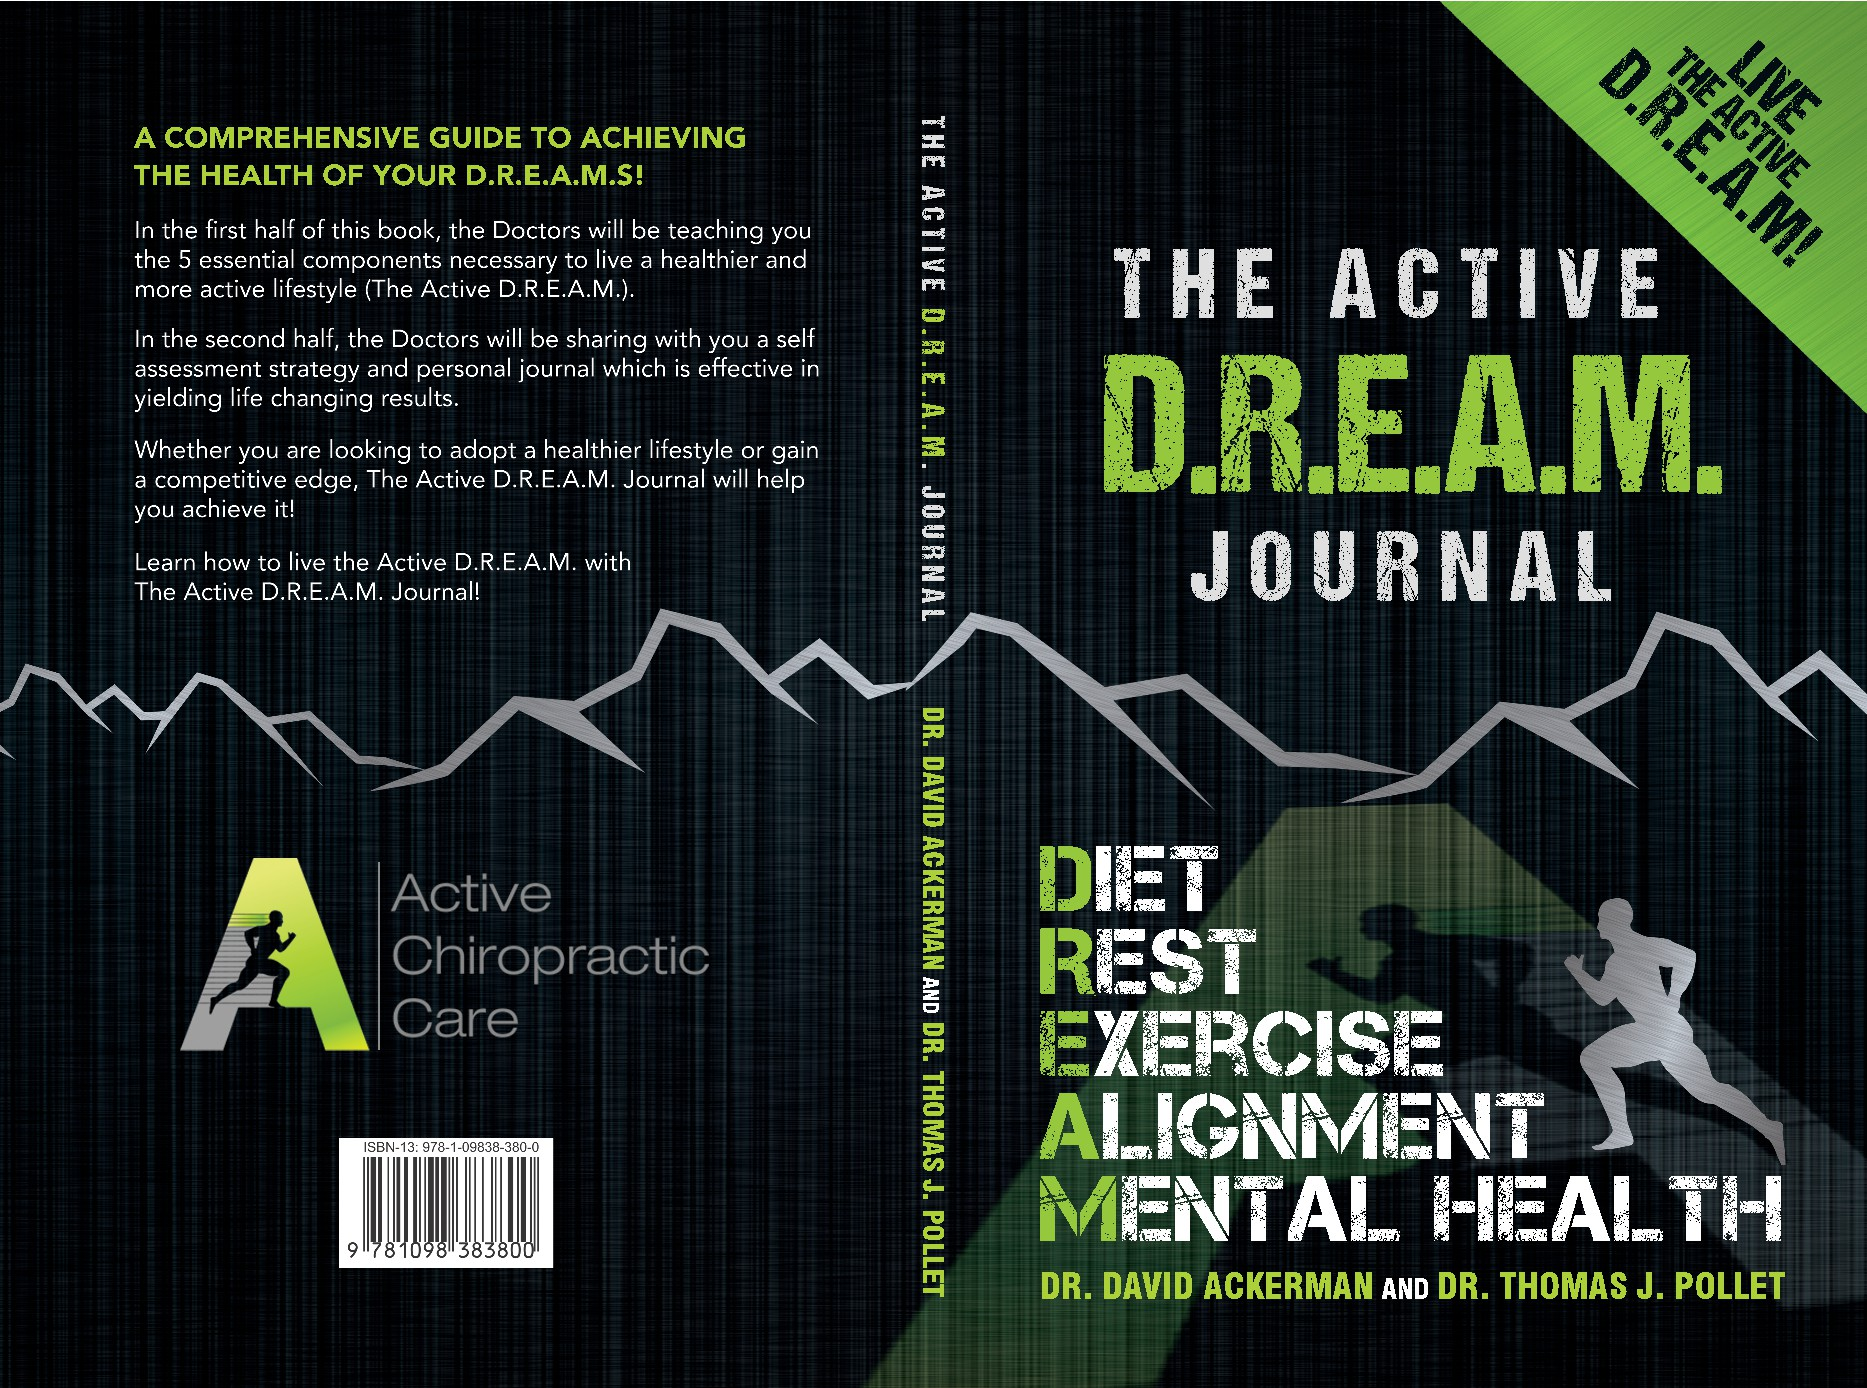 Be part of the Active D.R.E.A.M. and DESIGN our BOOK COVER!!!